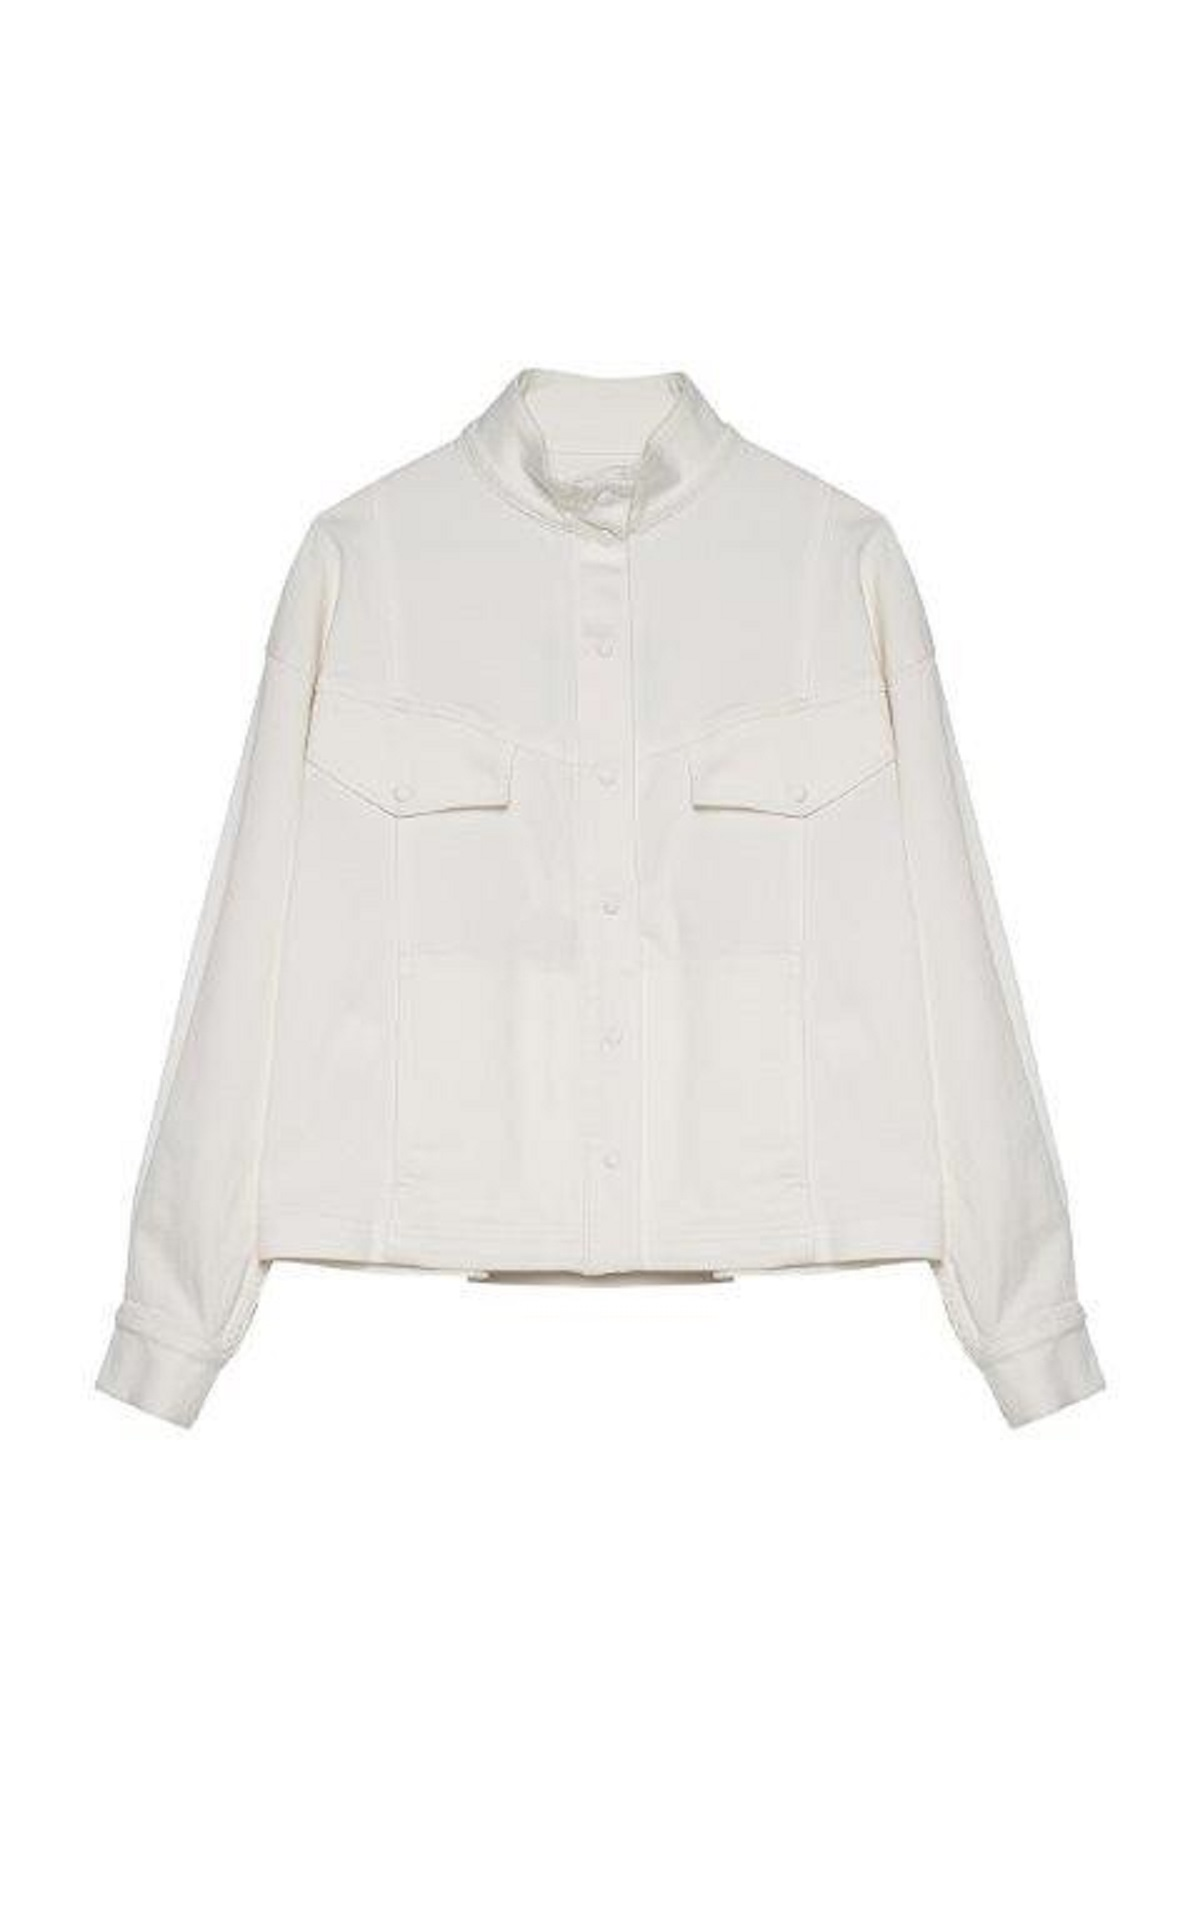 White denim shirt Roberto Verino